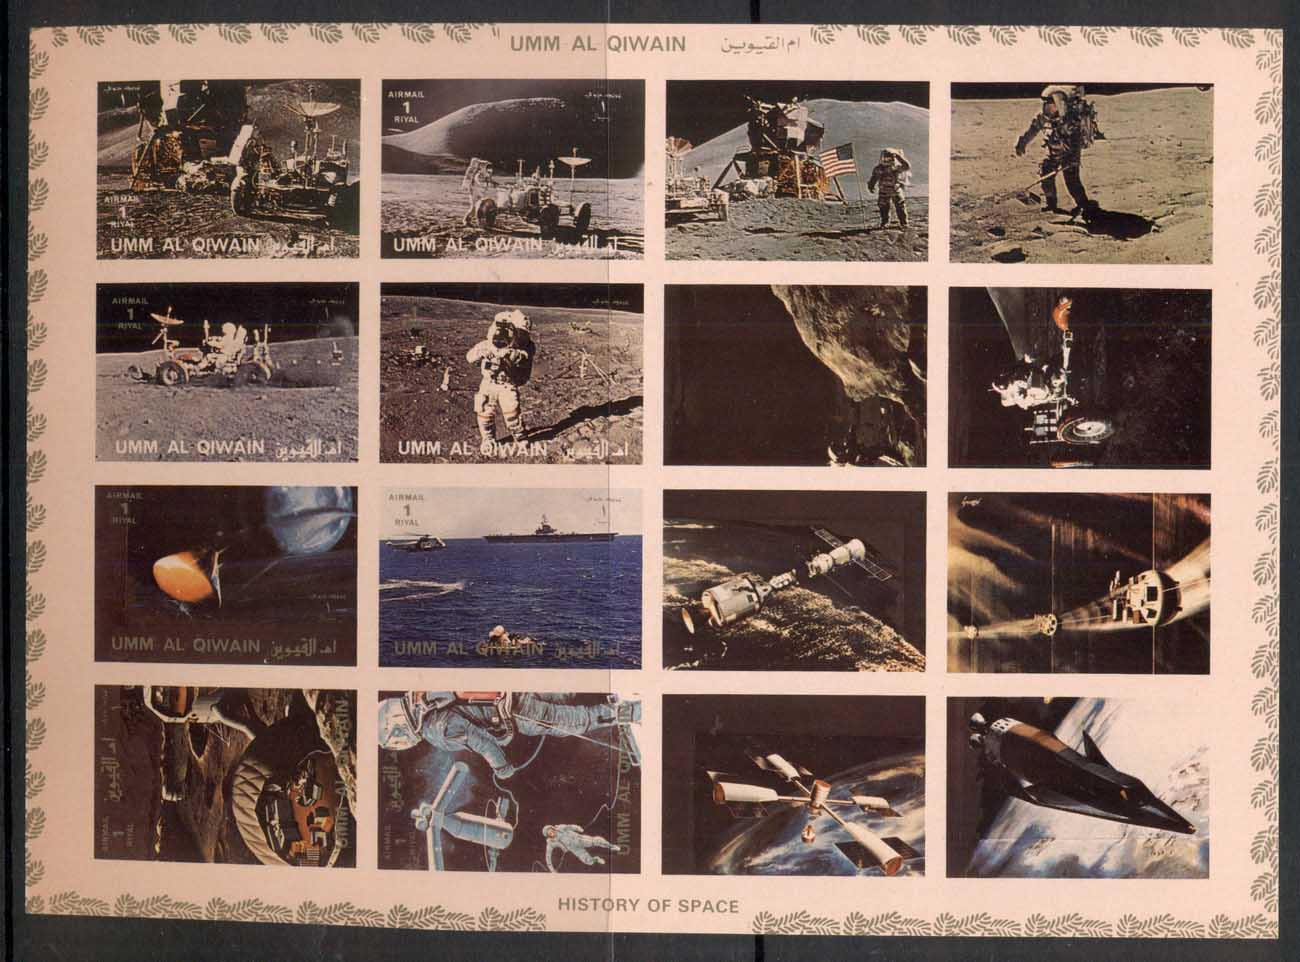 Umm Al Qiwain 1972 Mi#1194-1201B History of Space, Moon Exploration IMPERF sheetlet MUH